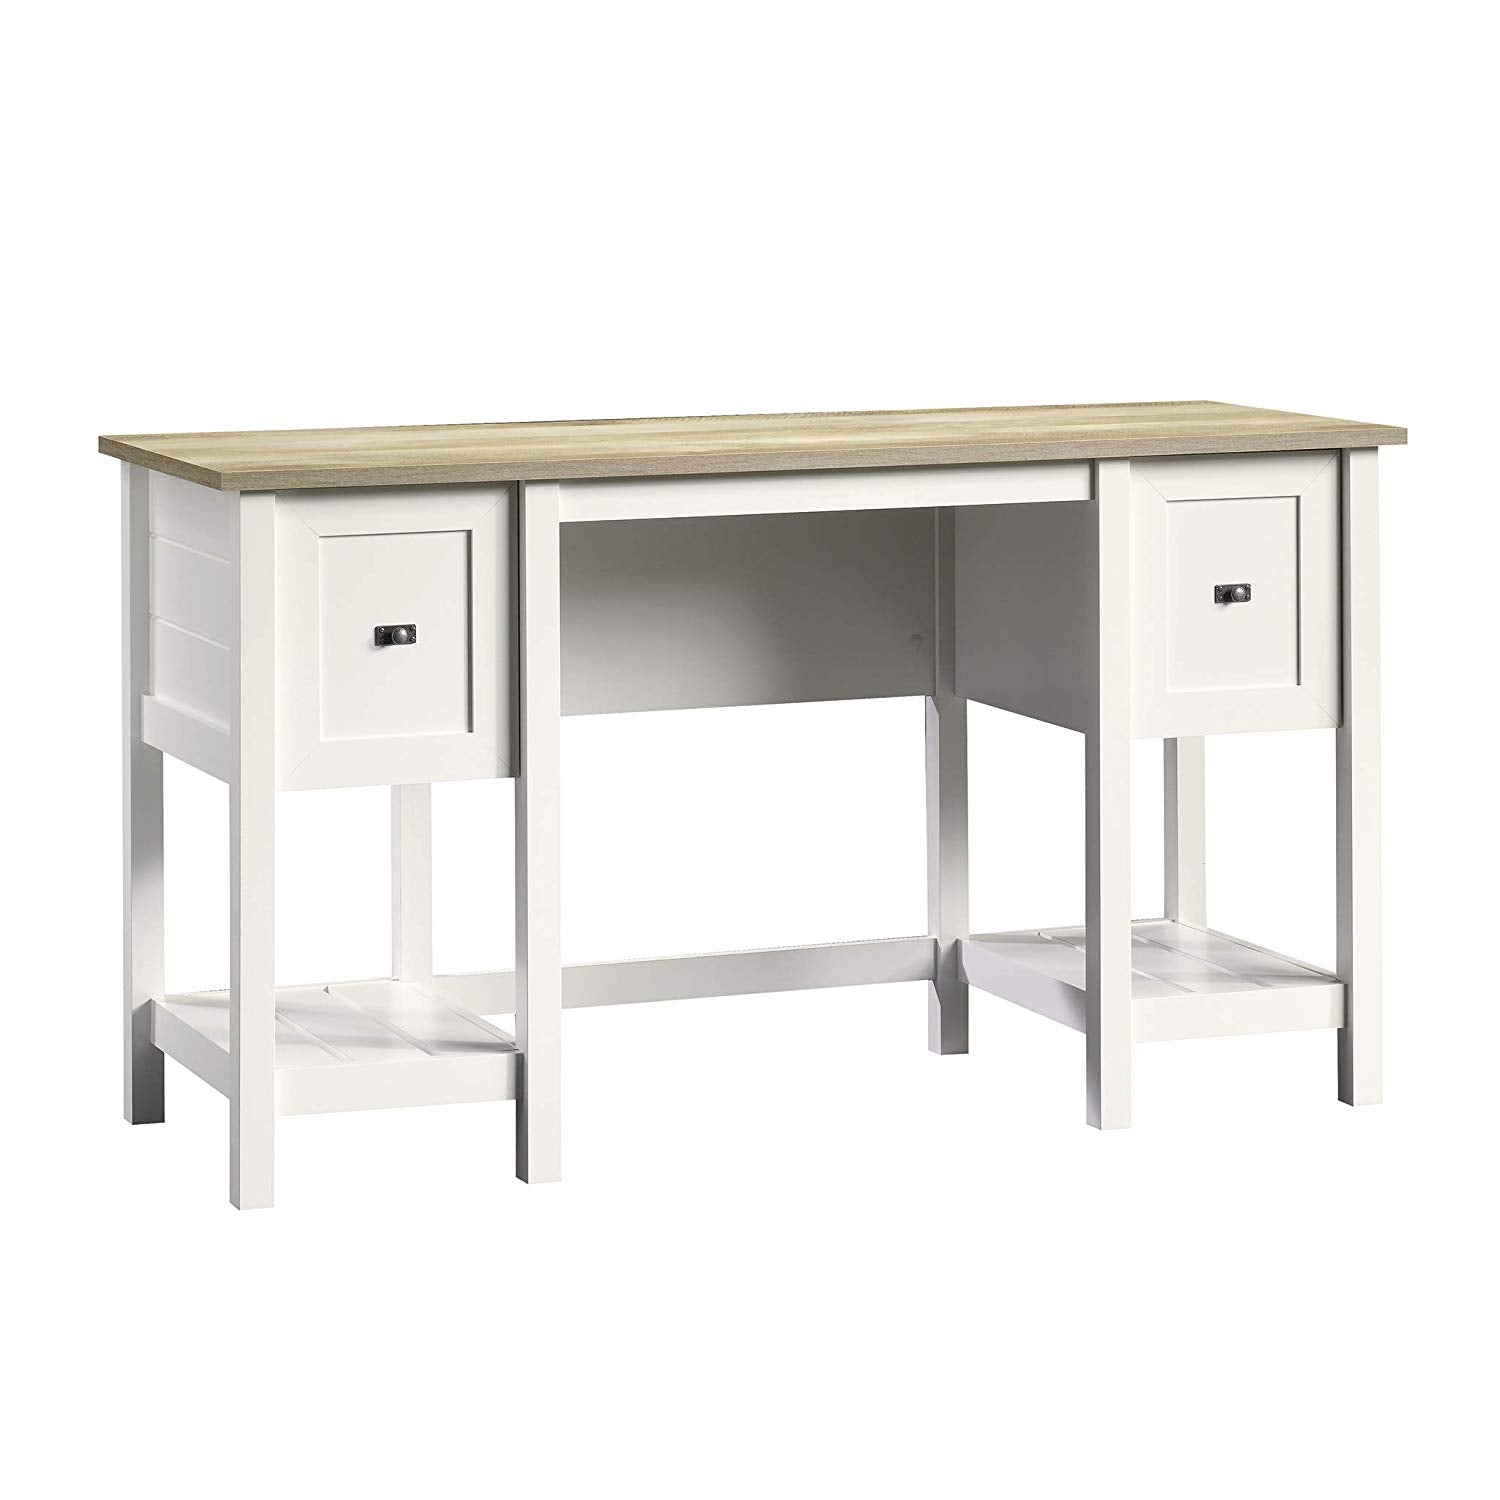 Cottage Road Desk, L: 53.94